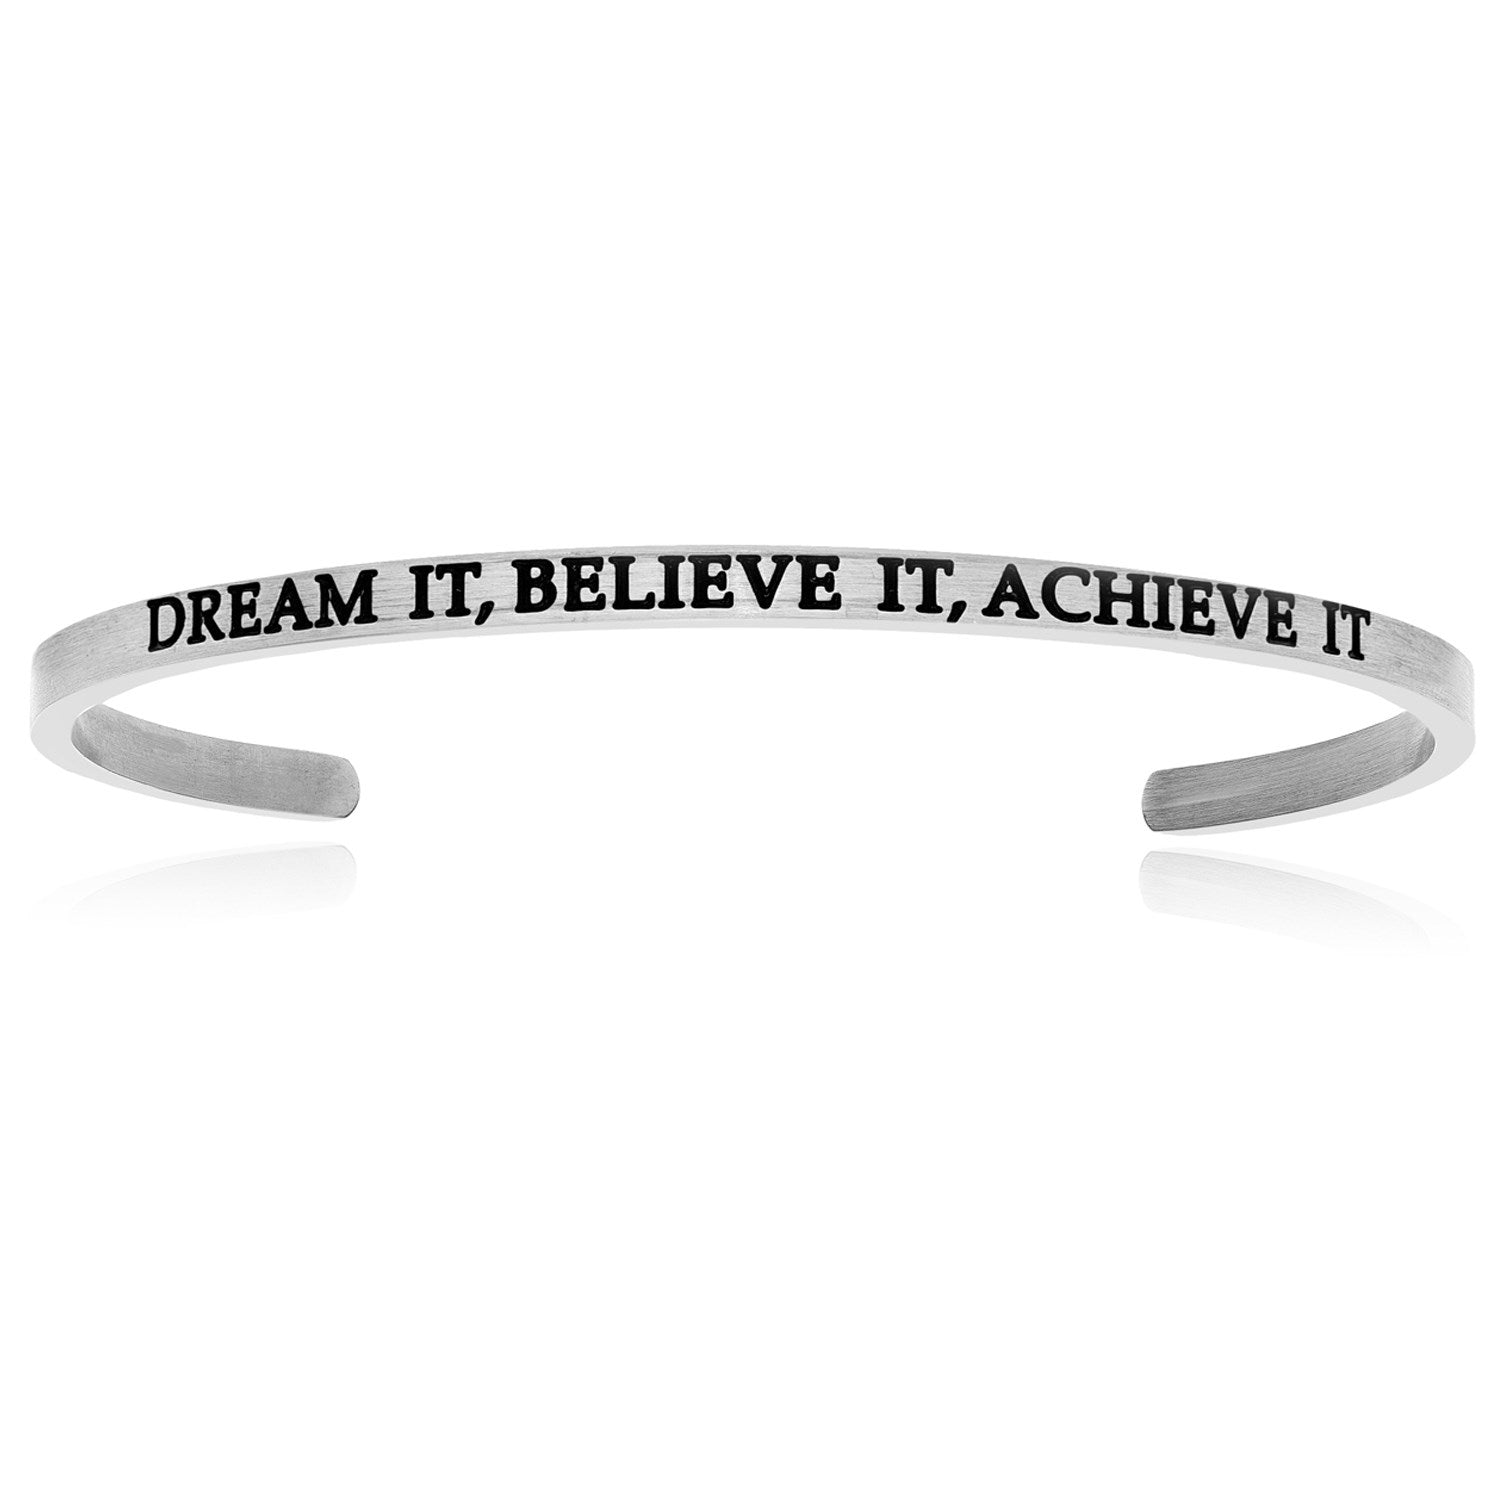 Stainless Steel Dream It  Believe It  Achieve It Cuff Bracelet